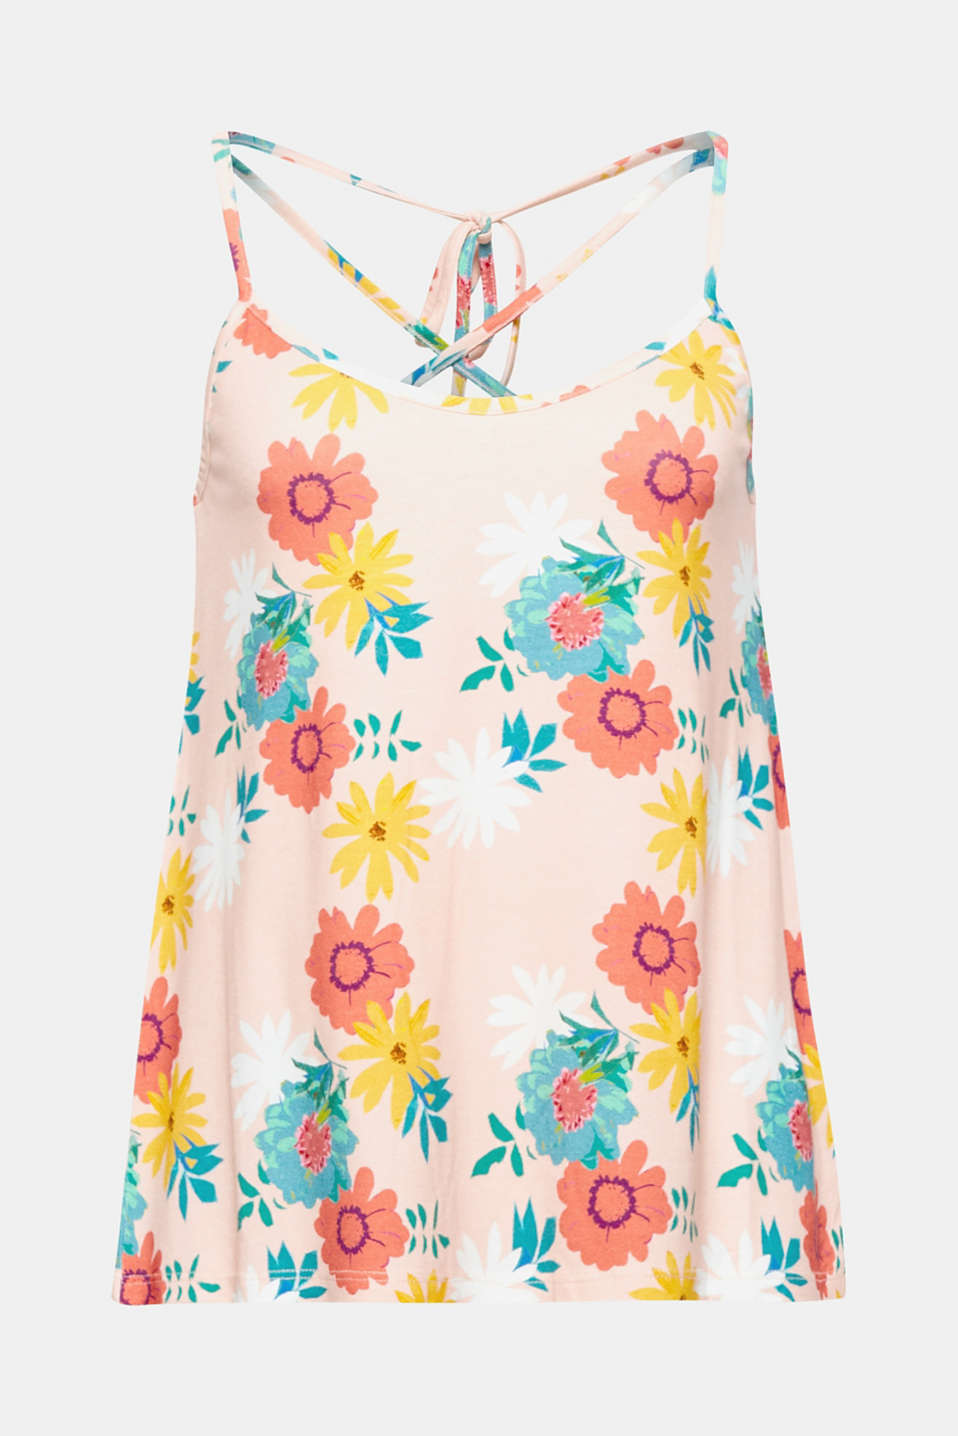 This dainty vest top has a light and airy summer vibe thanks to the colourful all-over print and the sophisticated lace-up back.